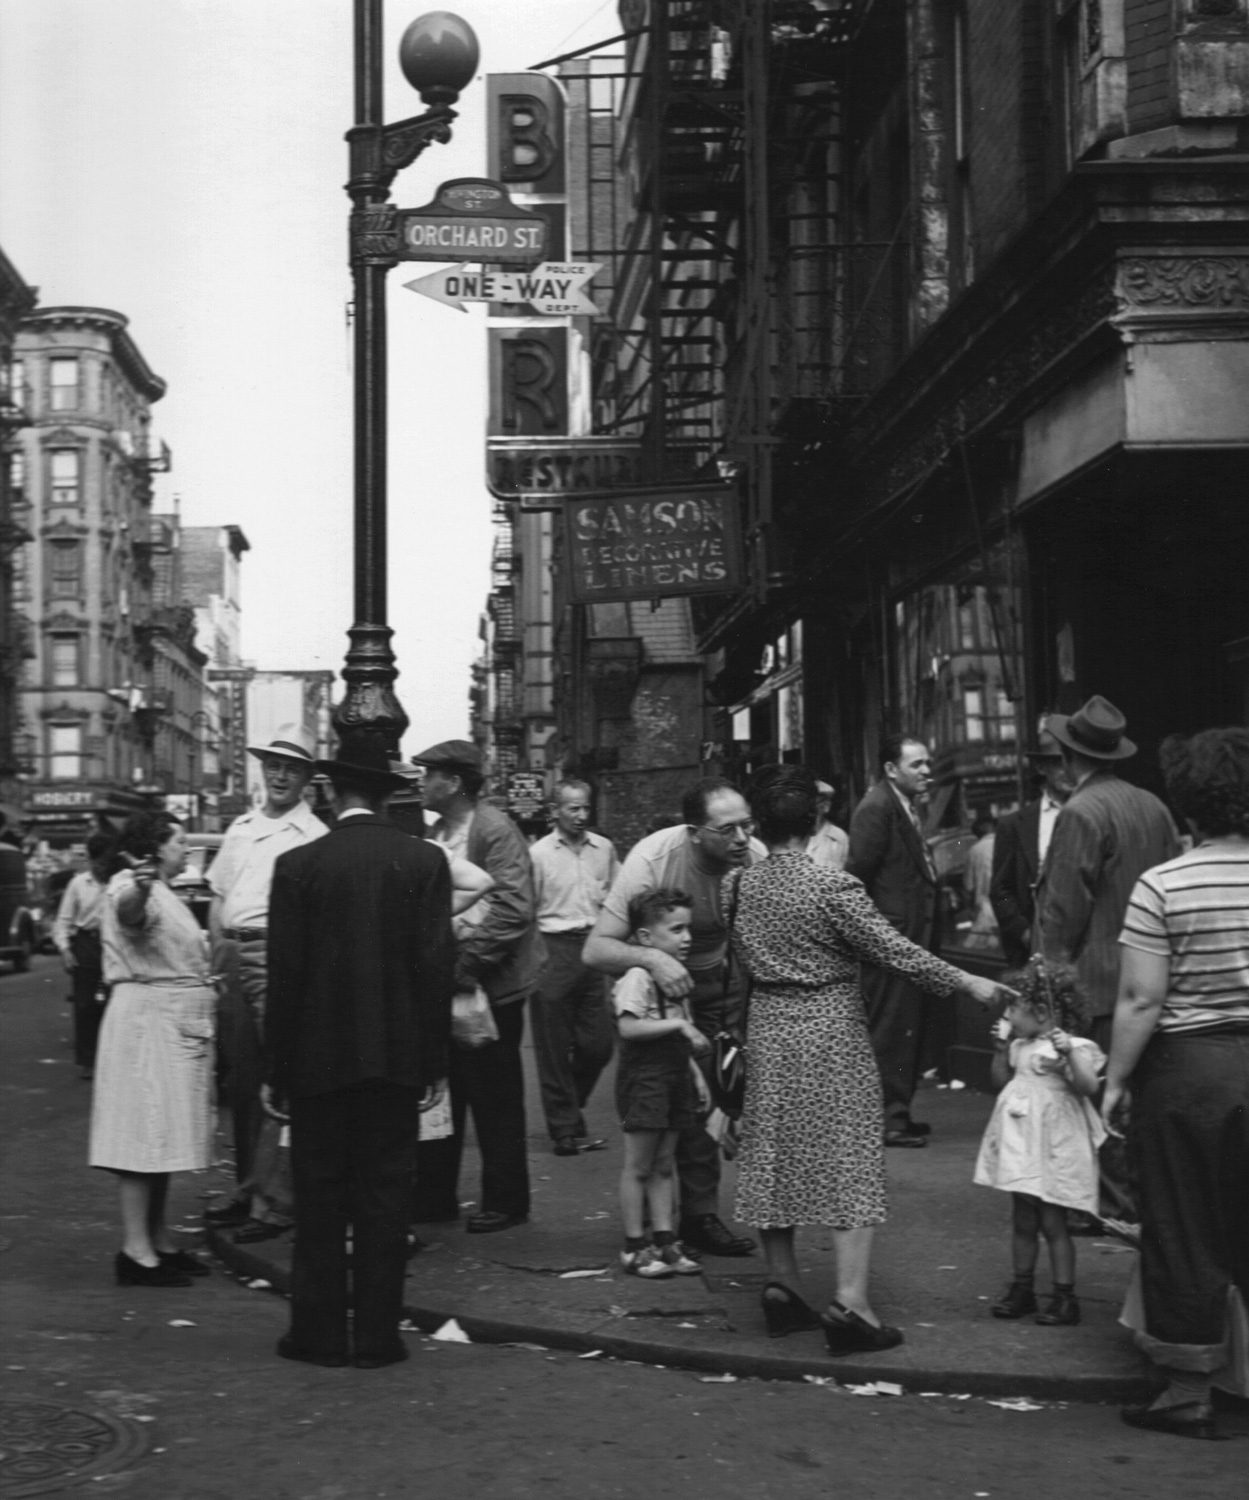 Directions on Orchard St., Lower East Side, N.Y.C.